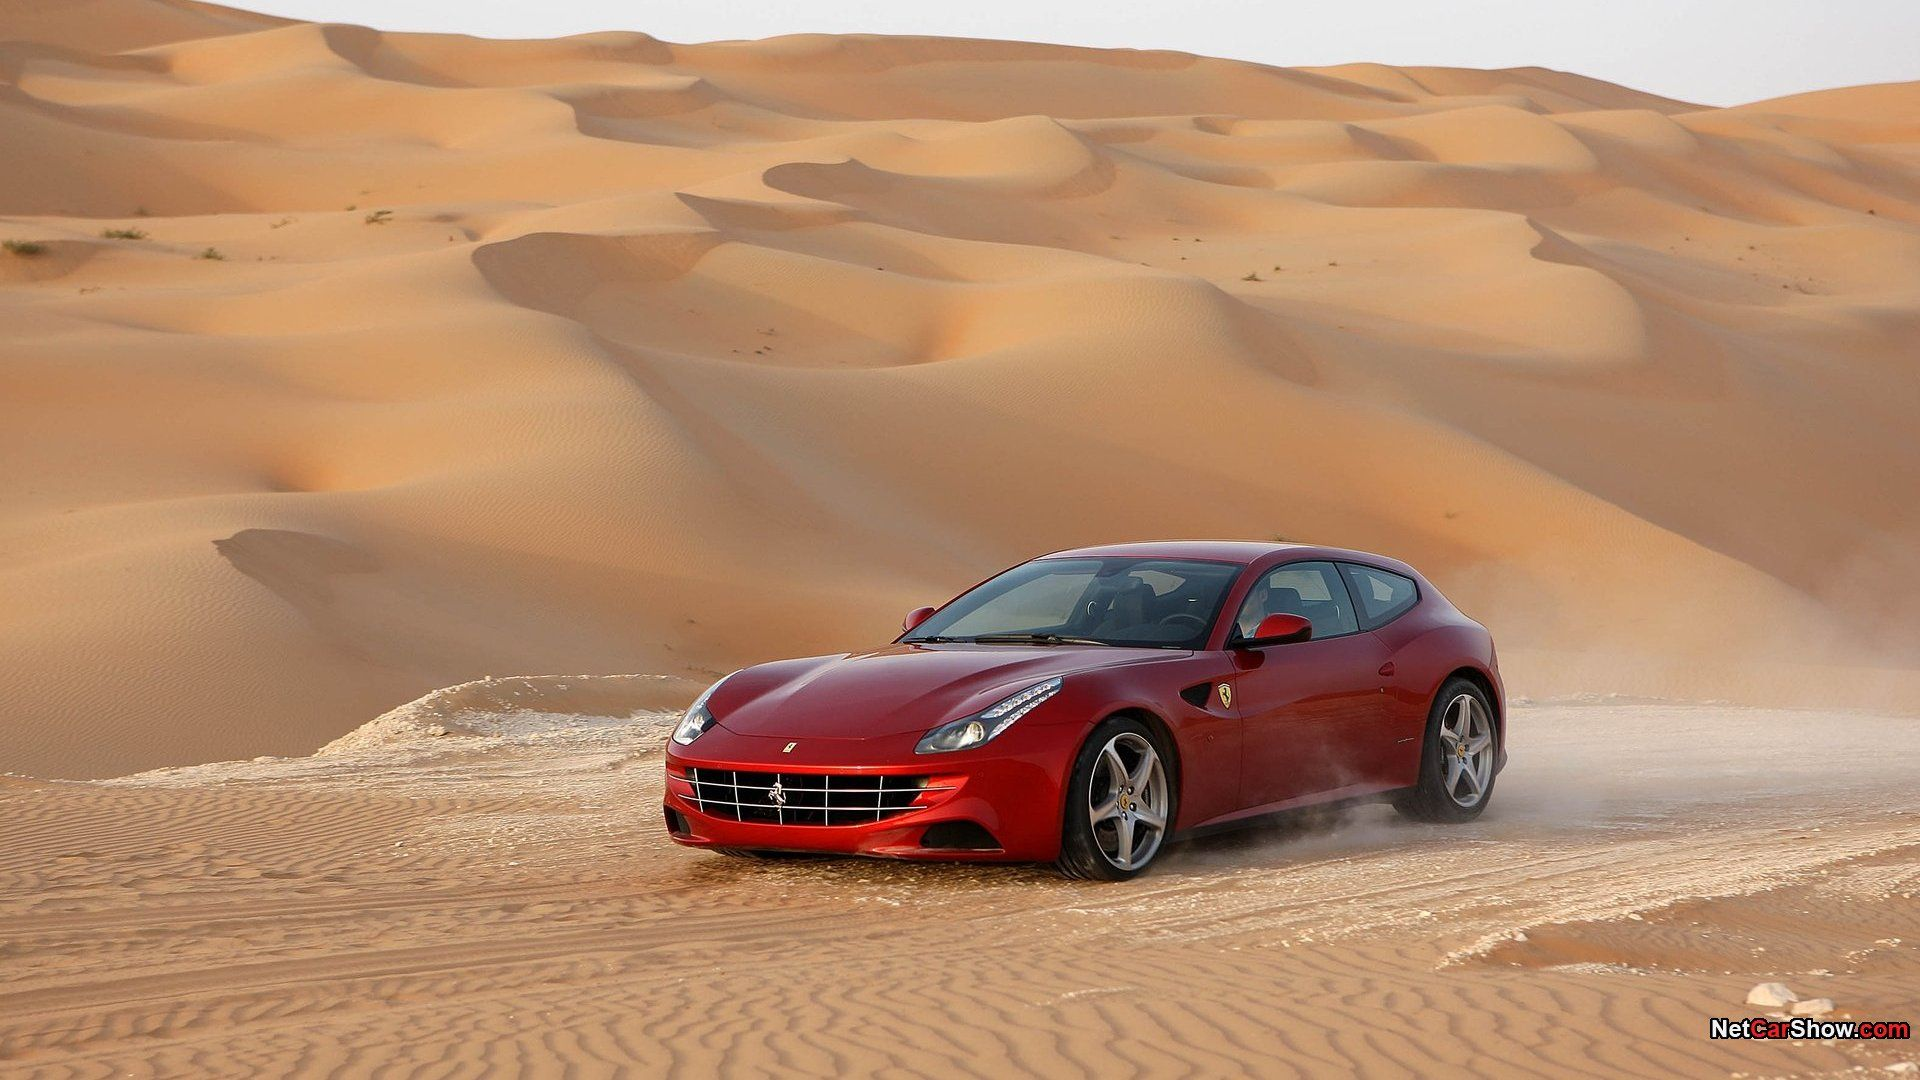 1920x1080 - Ferrari FF Wallpapers 5